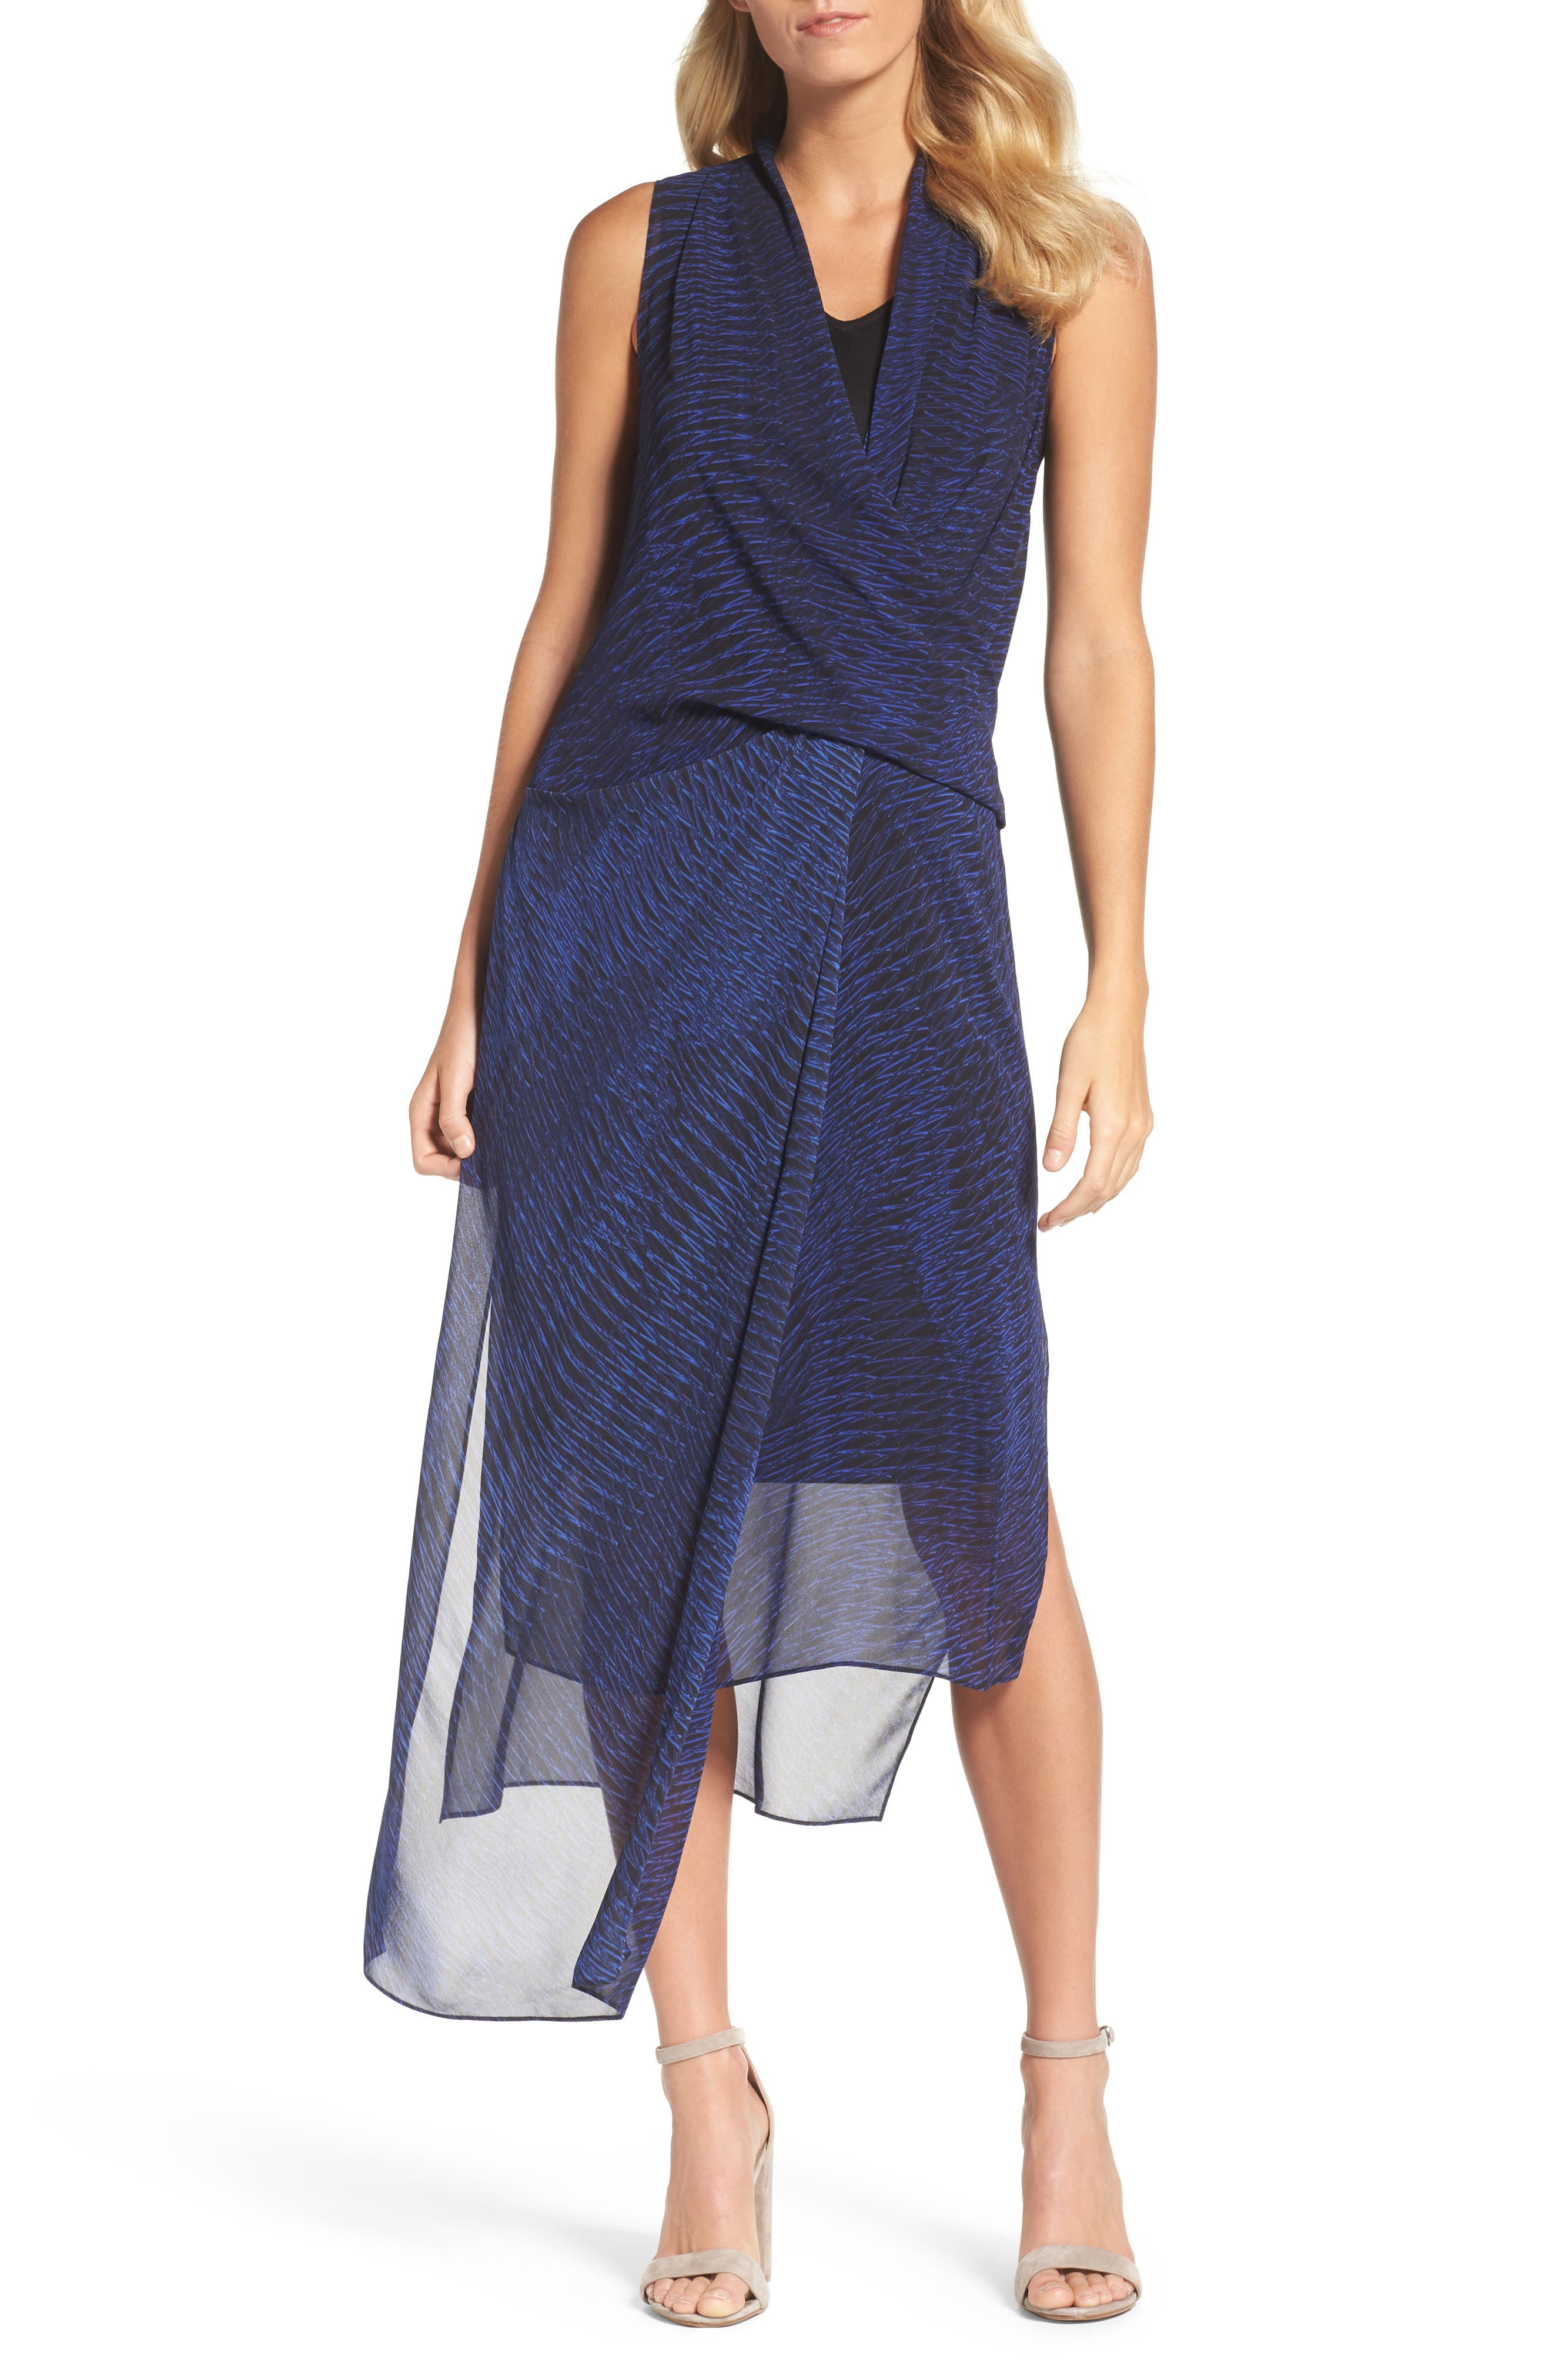 Blue Streaks Midi Dress,                         Main,                         color, 465